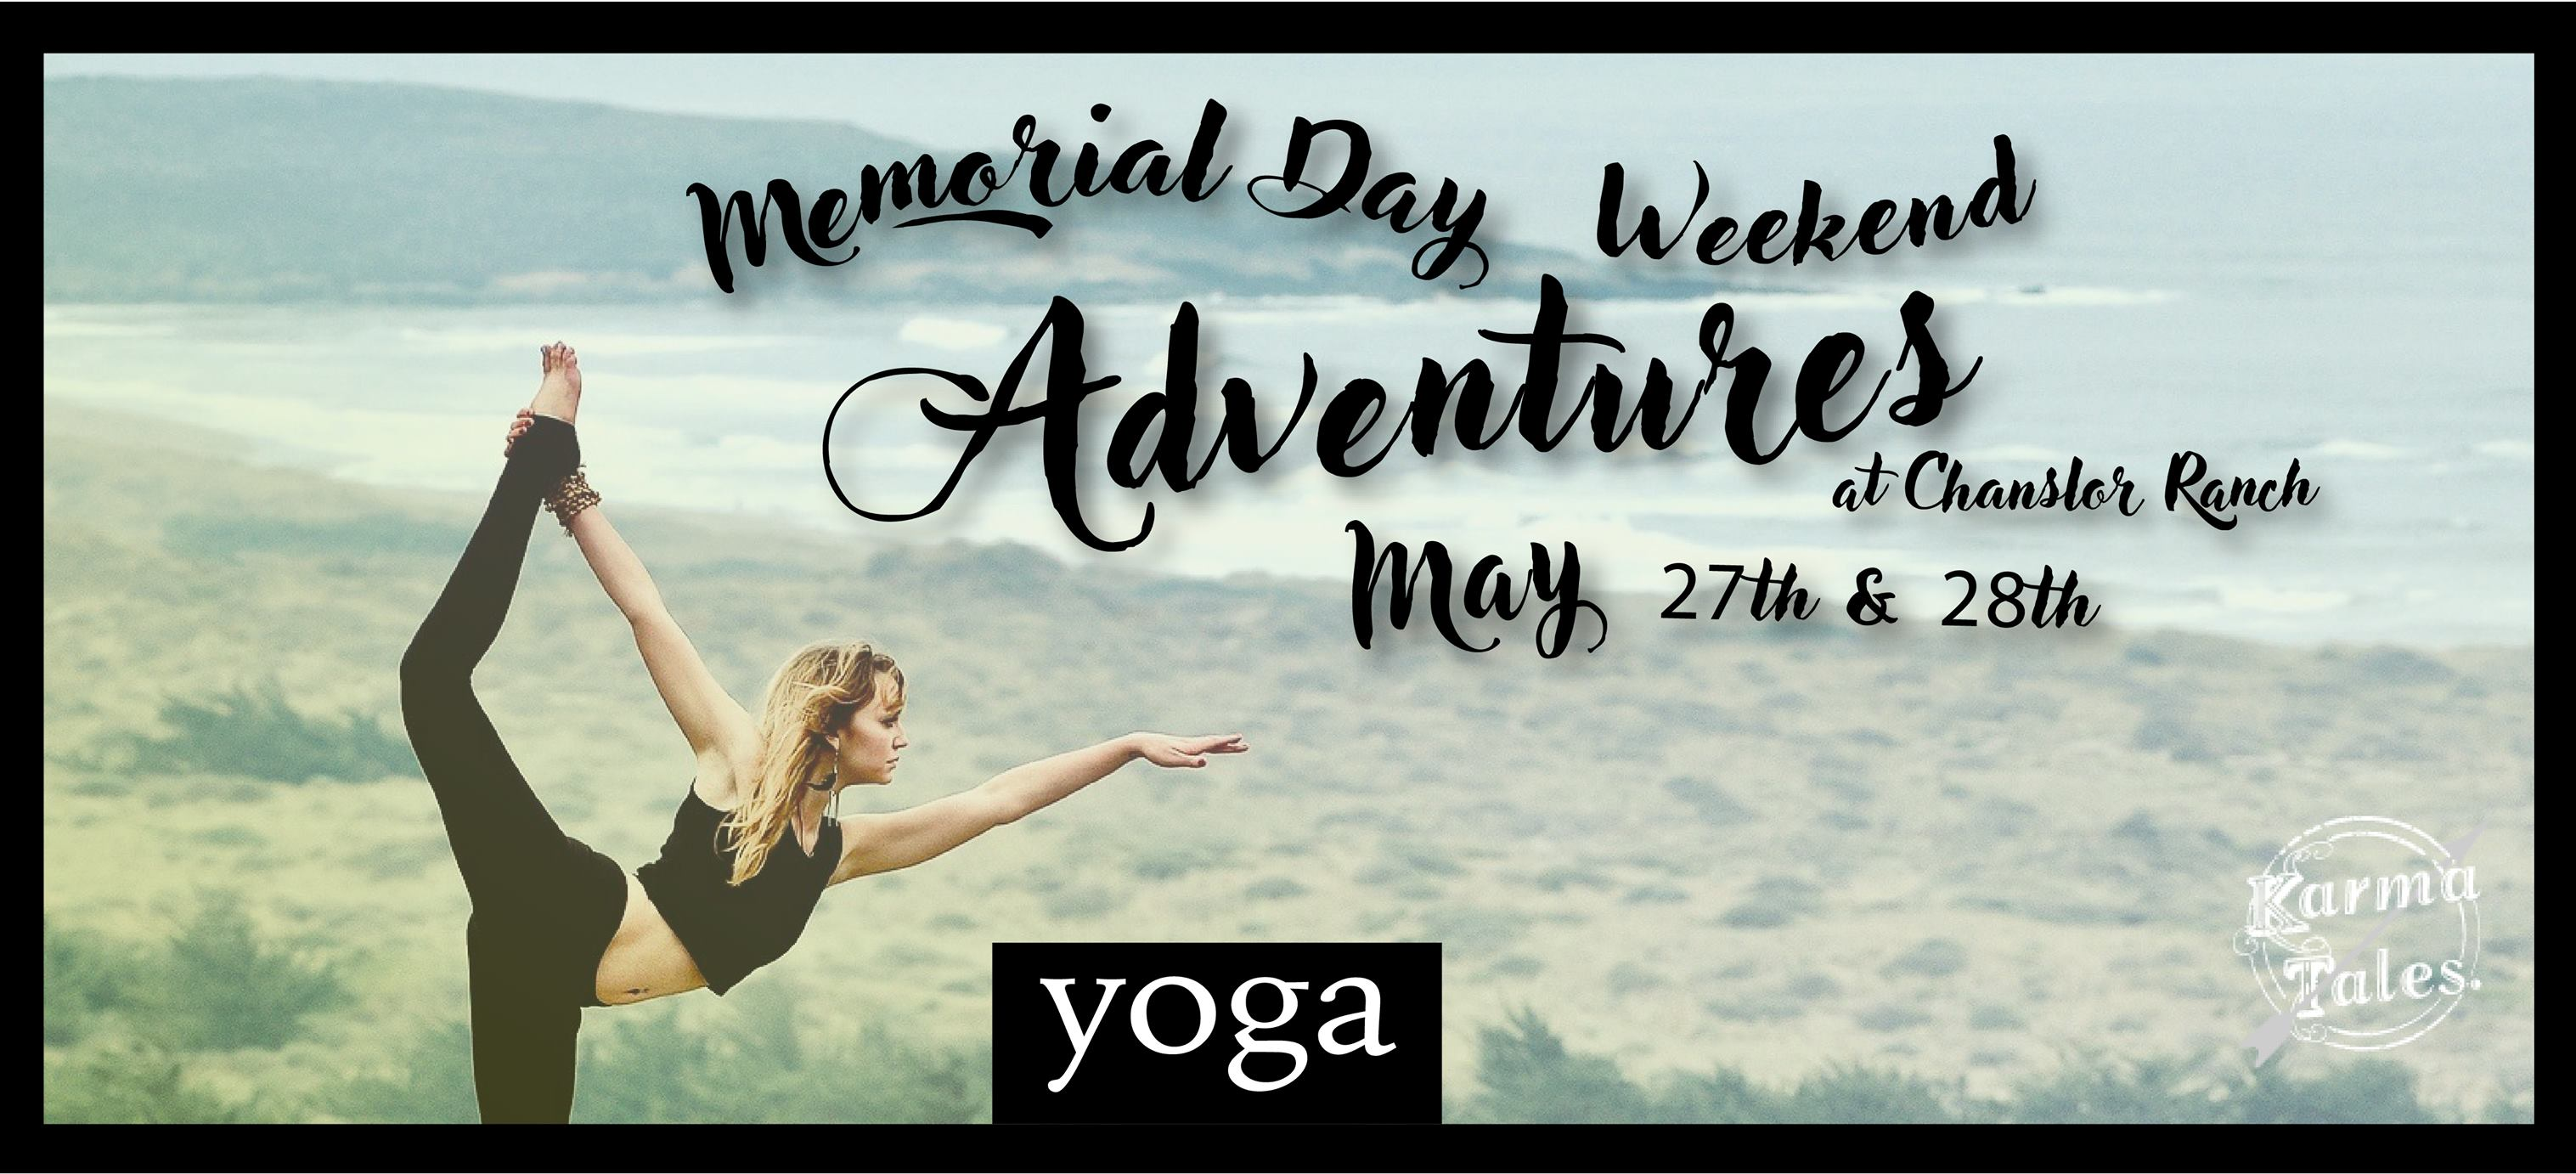 Yoga! memorial day weekend classes on the coast @ Chanslor Ranch